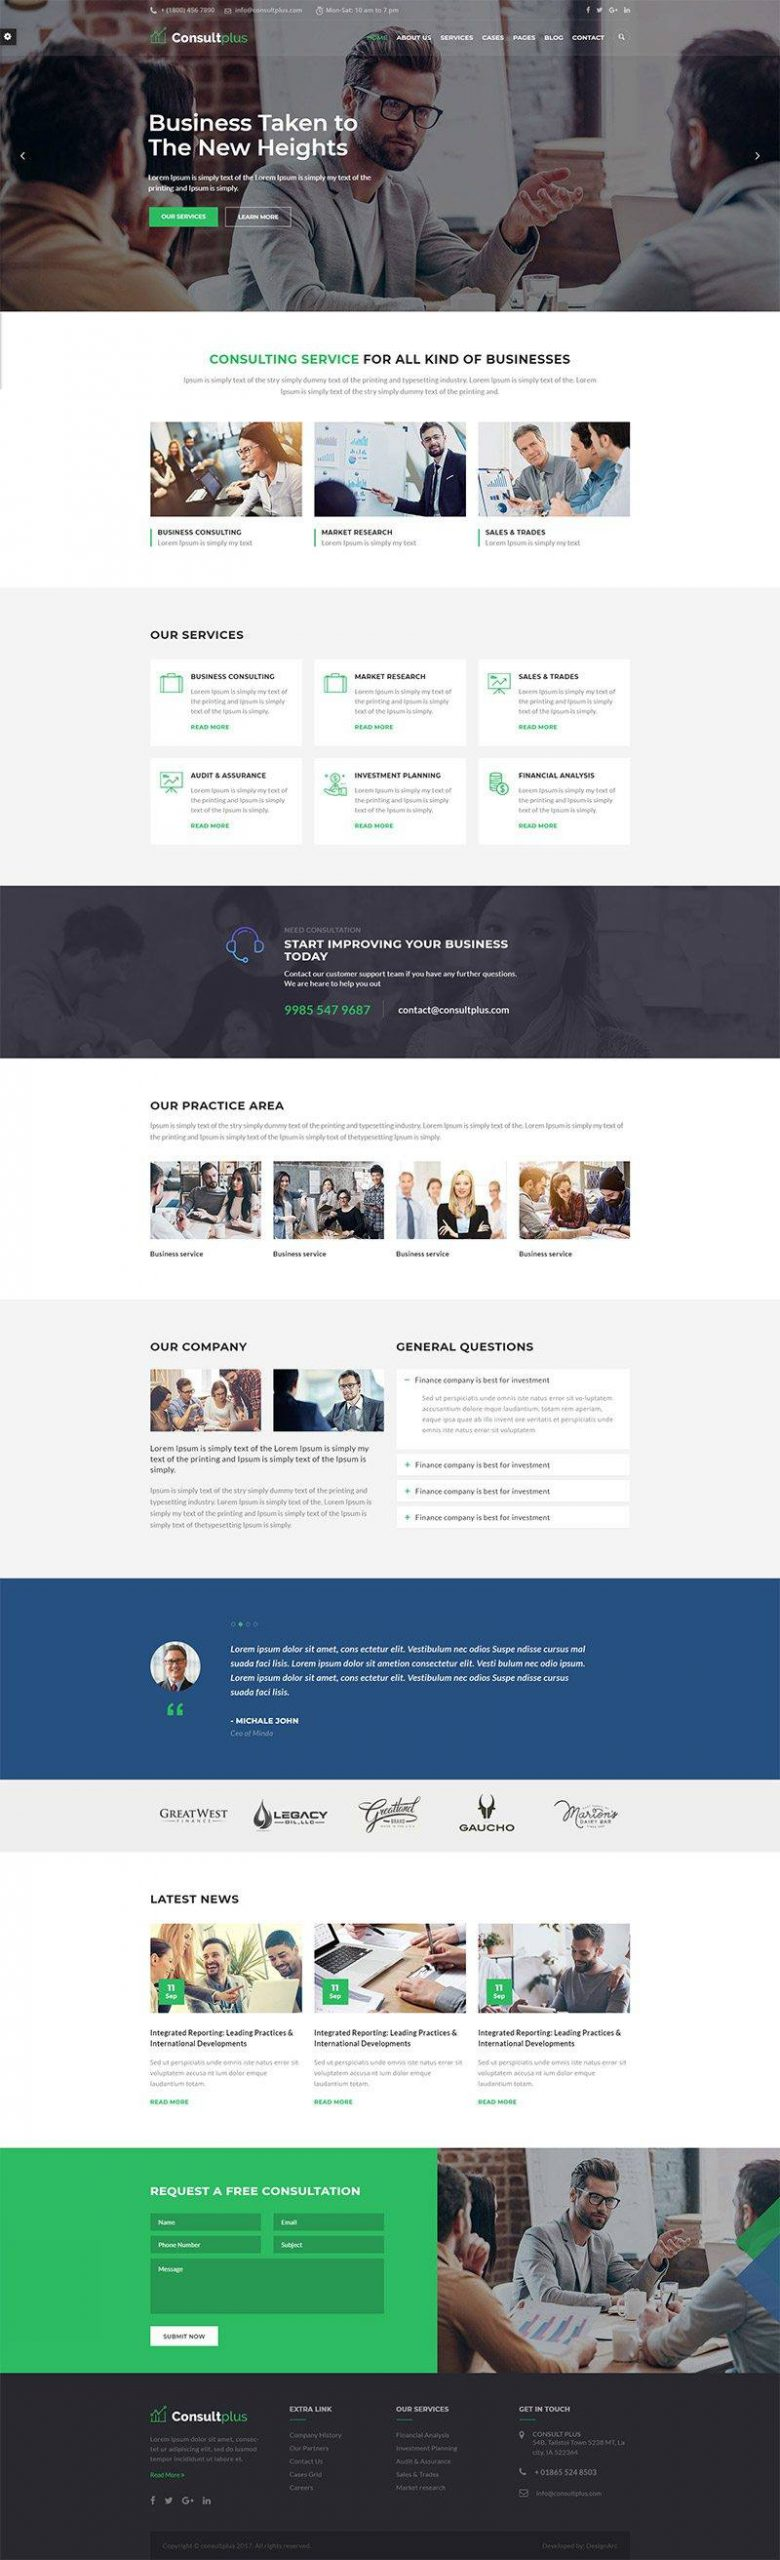 Giao diện website doanh nghiệp Consultplus